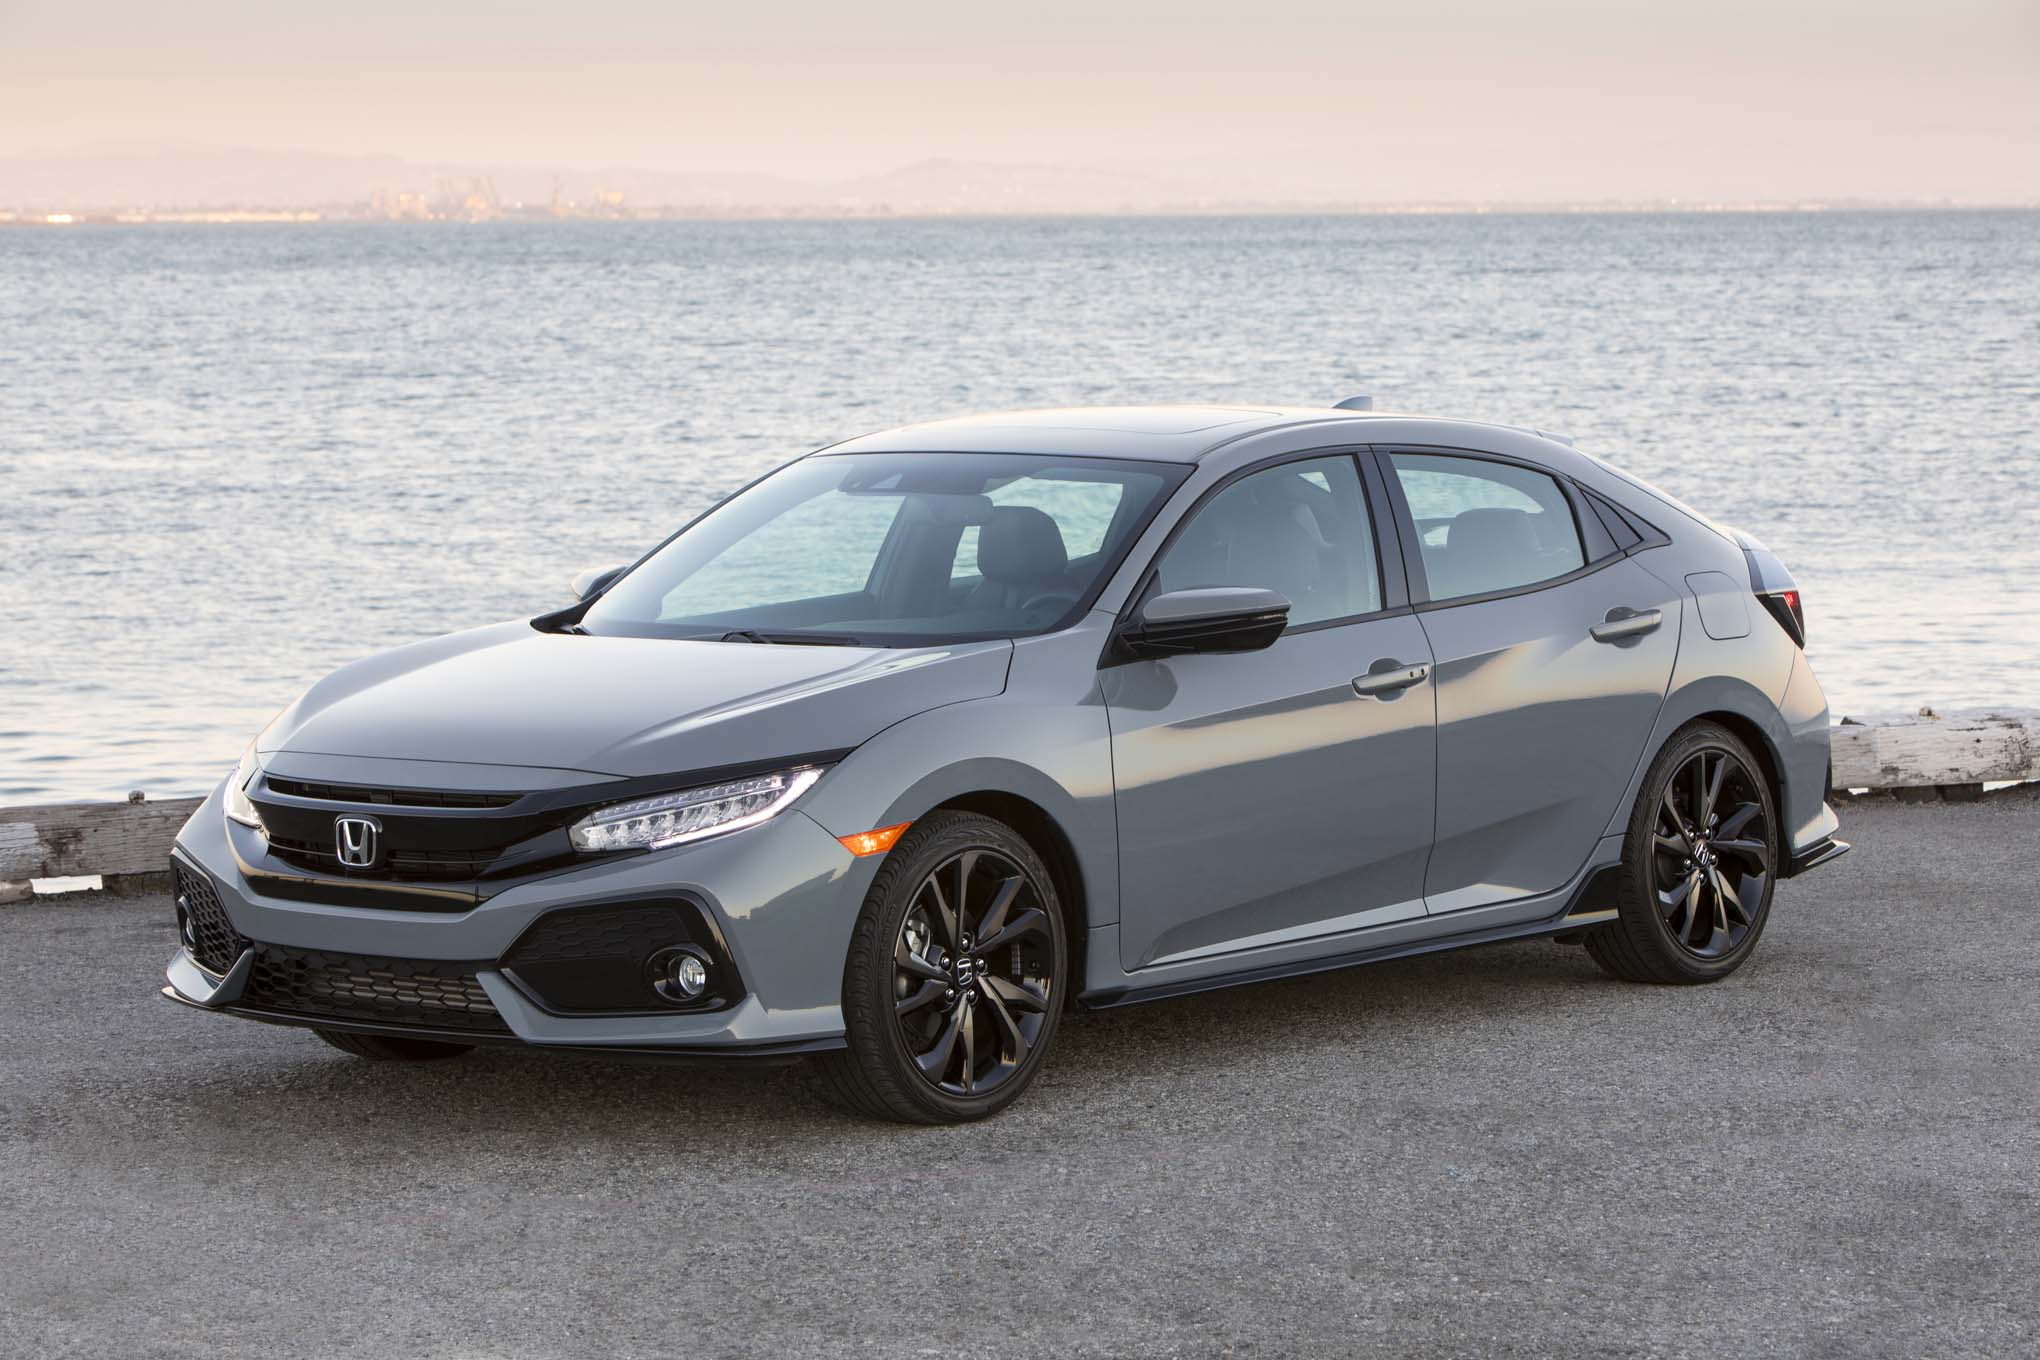 2017 Honda Civic Hatchback Ex L W Navi First Drive Review